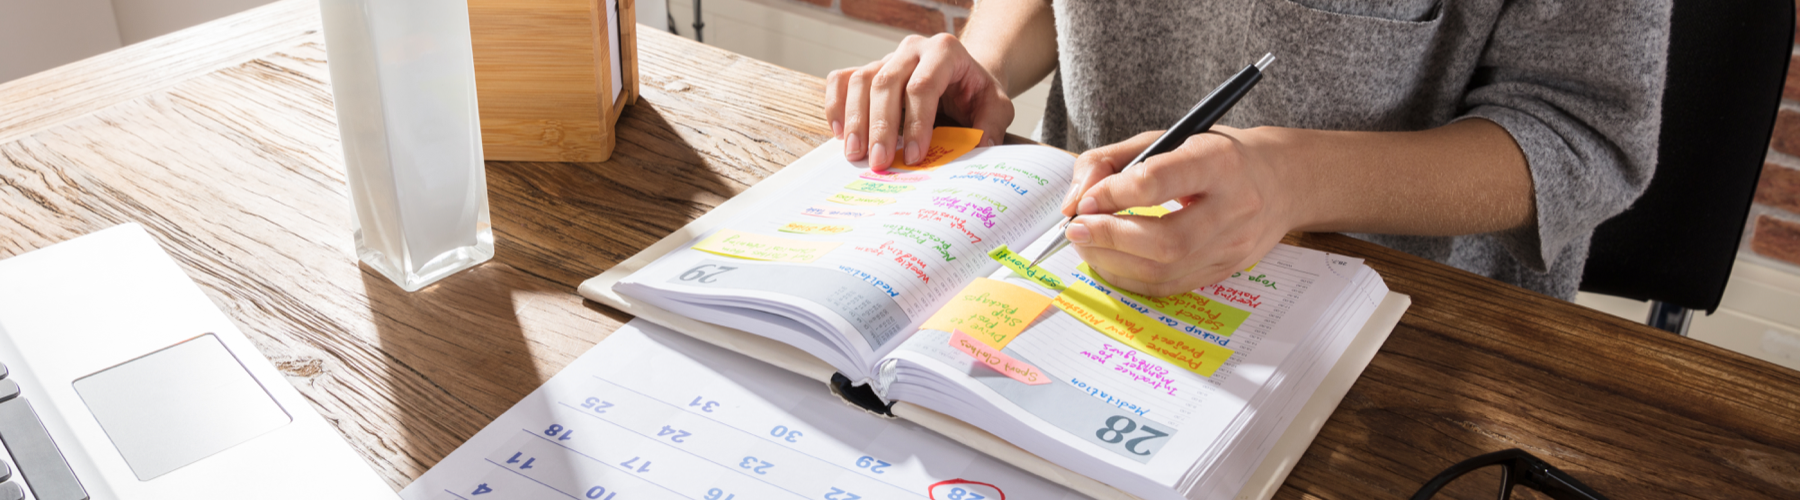 Why Printed Calendars are the Gift That Keeps on Giving All Year Round